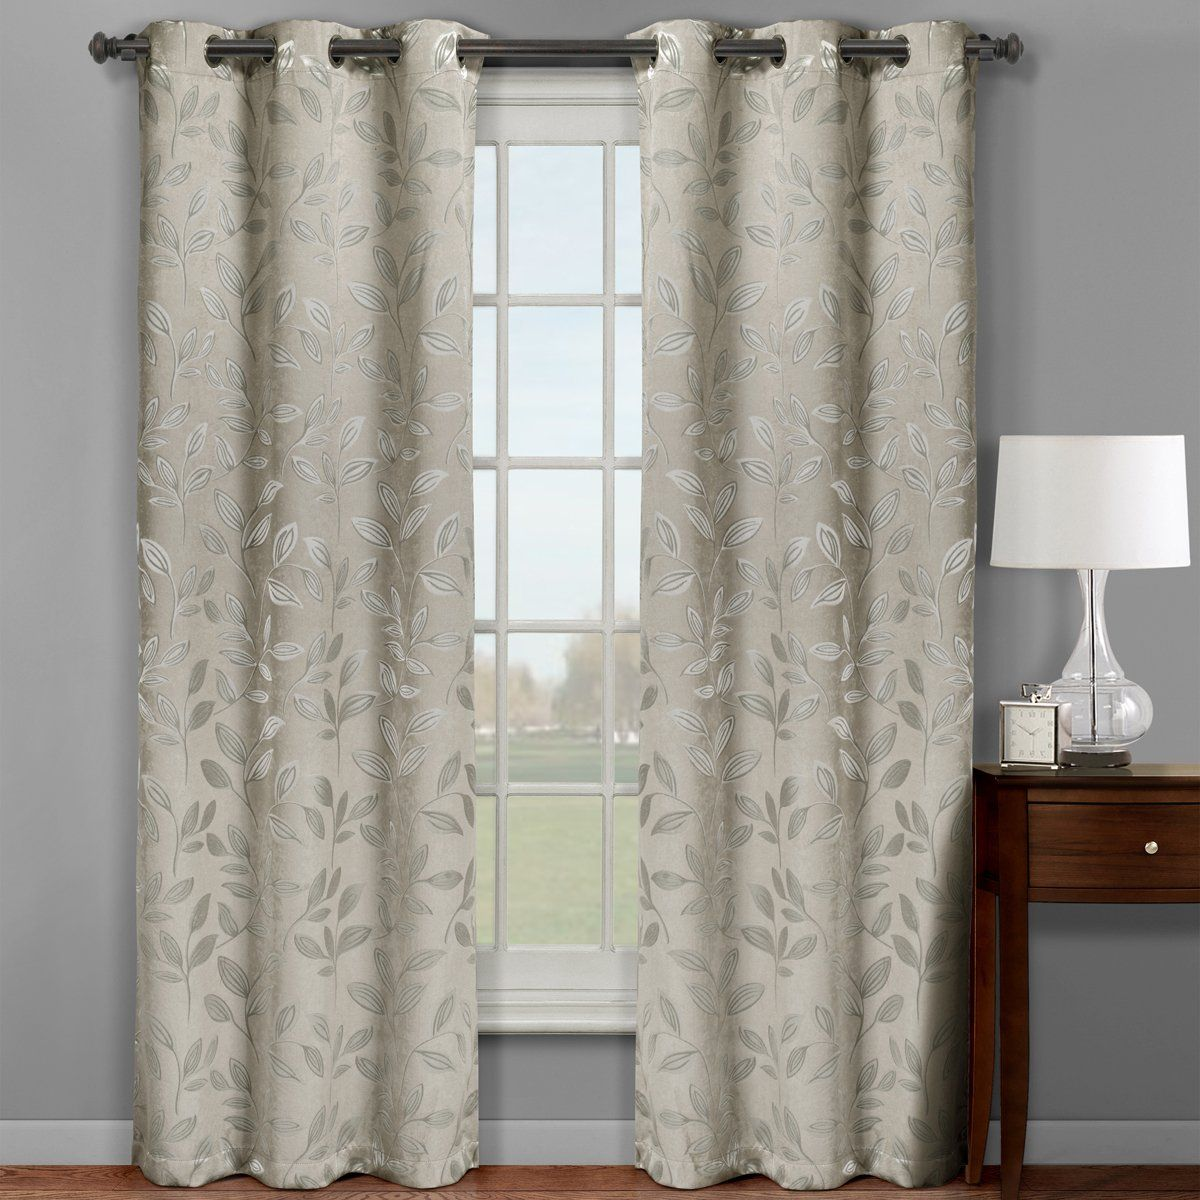 Robot Check Insulated Curtains Drapes Grommet Panel Curtains